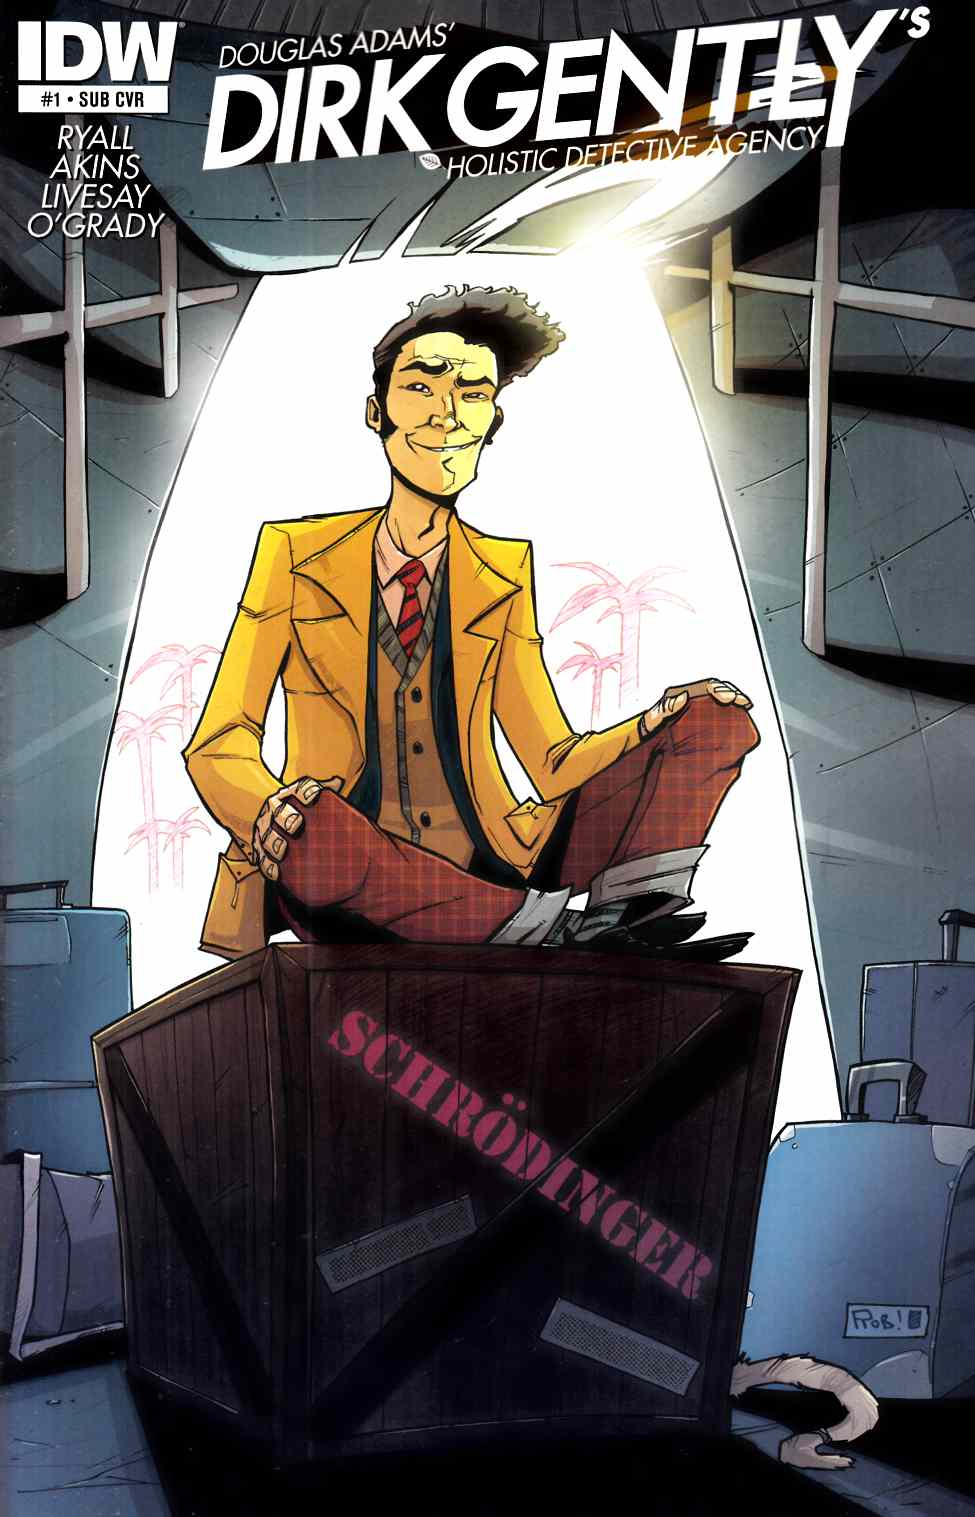 Dirk Gentlys Holistic Detective Agency #1 Subcription Cover [IDW Comic]